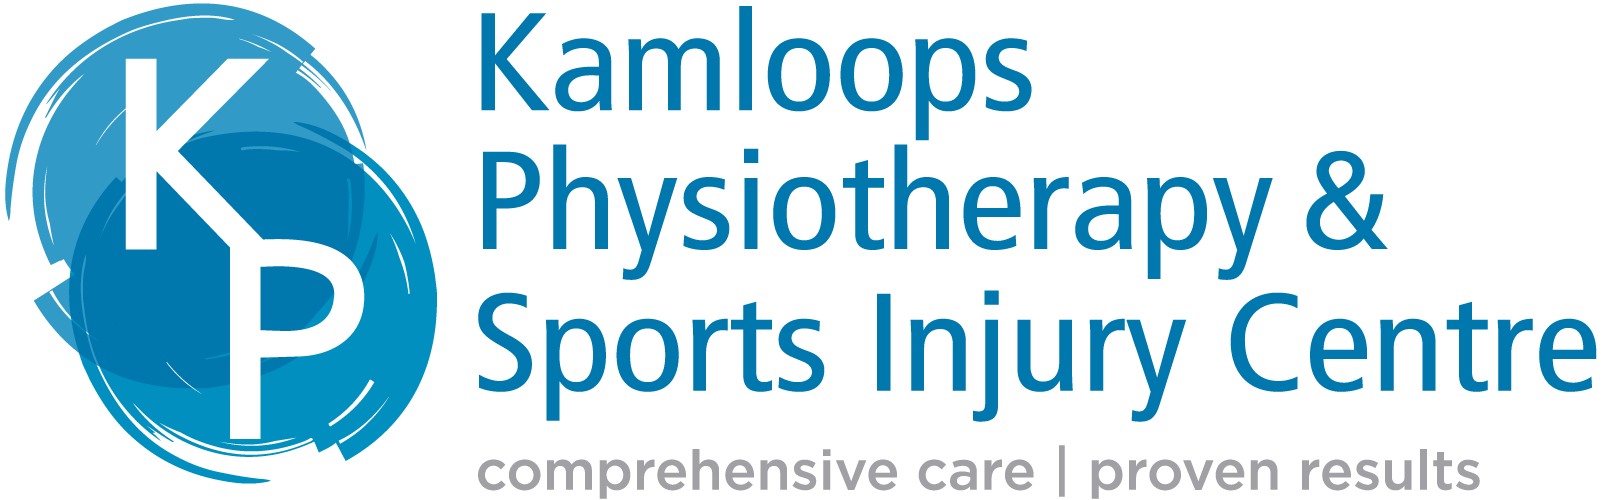 Kamloops Physiotherapy